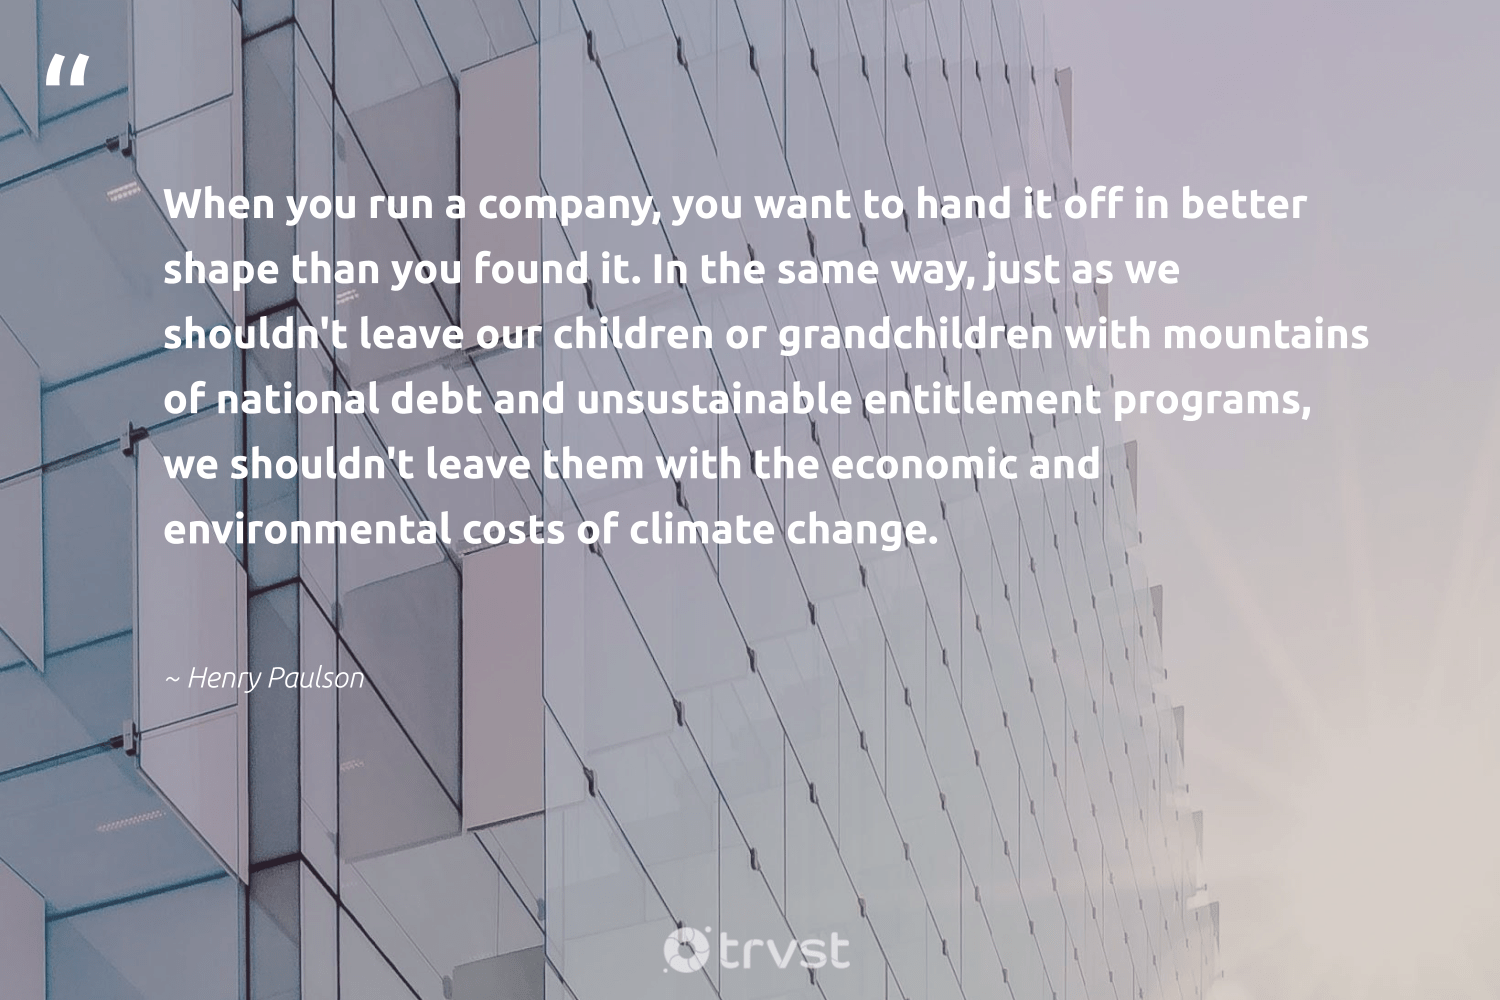 """""""When you run a company, you want to hand it off in better shape than you found it. In the same way, just as we shouldn't leave our children or grandchildren with mountains of national debt and unsustainable entitlement programs, we shouldn't leave them with the economic and environmental costs of climate change.""""  - Henry Paulson #trvst #quotes #climatechange #environmental #mountains #climate #children #climatechangeisreal #globalwarming #dogood #climateaction #dotherightthing"""